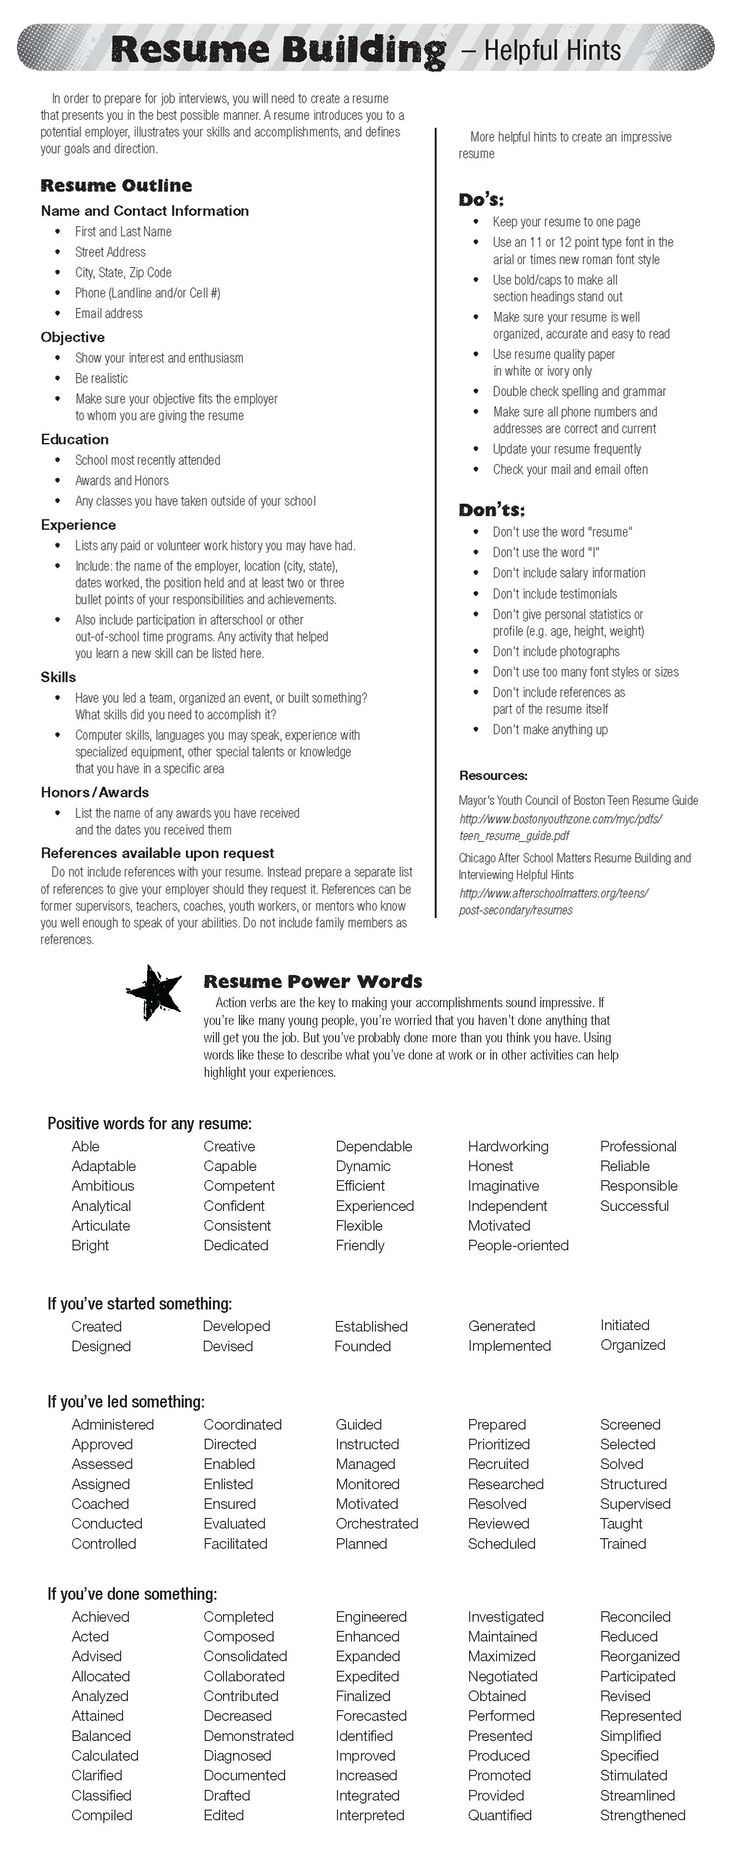 Opposenewapstandardsus  Pleasant  Ideas About Resume On Pinterest  Cv Format Resume Cv And  With Handsome  Ideas About Resume On Pinterest  Cv Format Resume Cv And Resume Templates With Lovely Server Resume Description Also Standard Resume Template In Addition Resume Template In Word And Microsoft Word Templates Resume As Well As It Support Resume Additionally Software Skills Resume From Pinterestcom With Opposenewapstandardsus  Handsome  Ideas About Resume On Pinterest  Cv Format Resume Cv And  With Lovely  Ideas About Resume On Pinterest  Cv Format Resume Cv And Resume Templates And Pleasant Server Resume Description Also Standard Resume Template In Addition Resume Template In Word From Pinterestcom